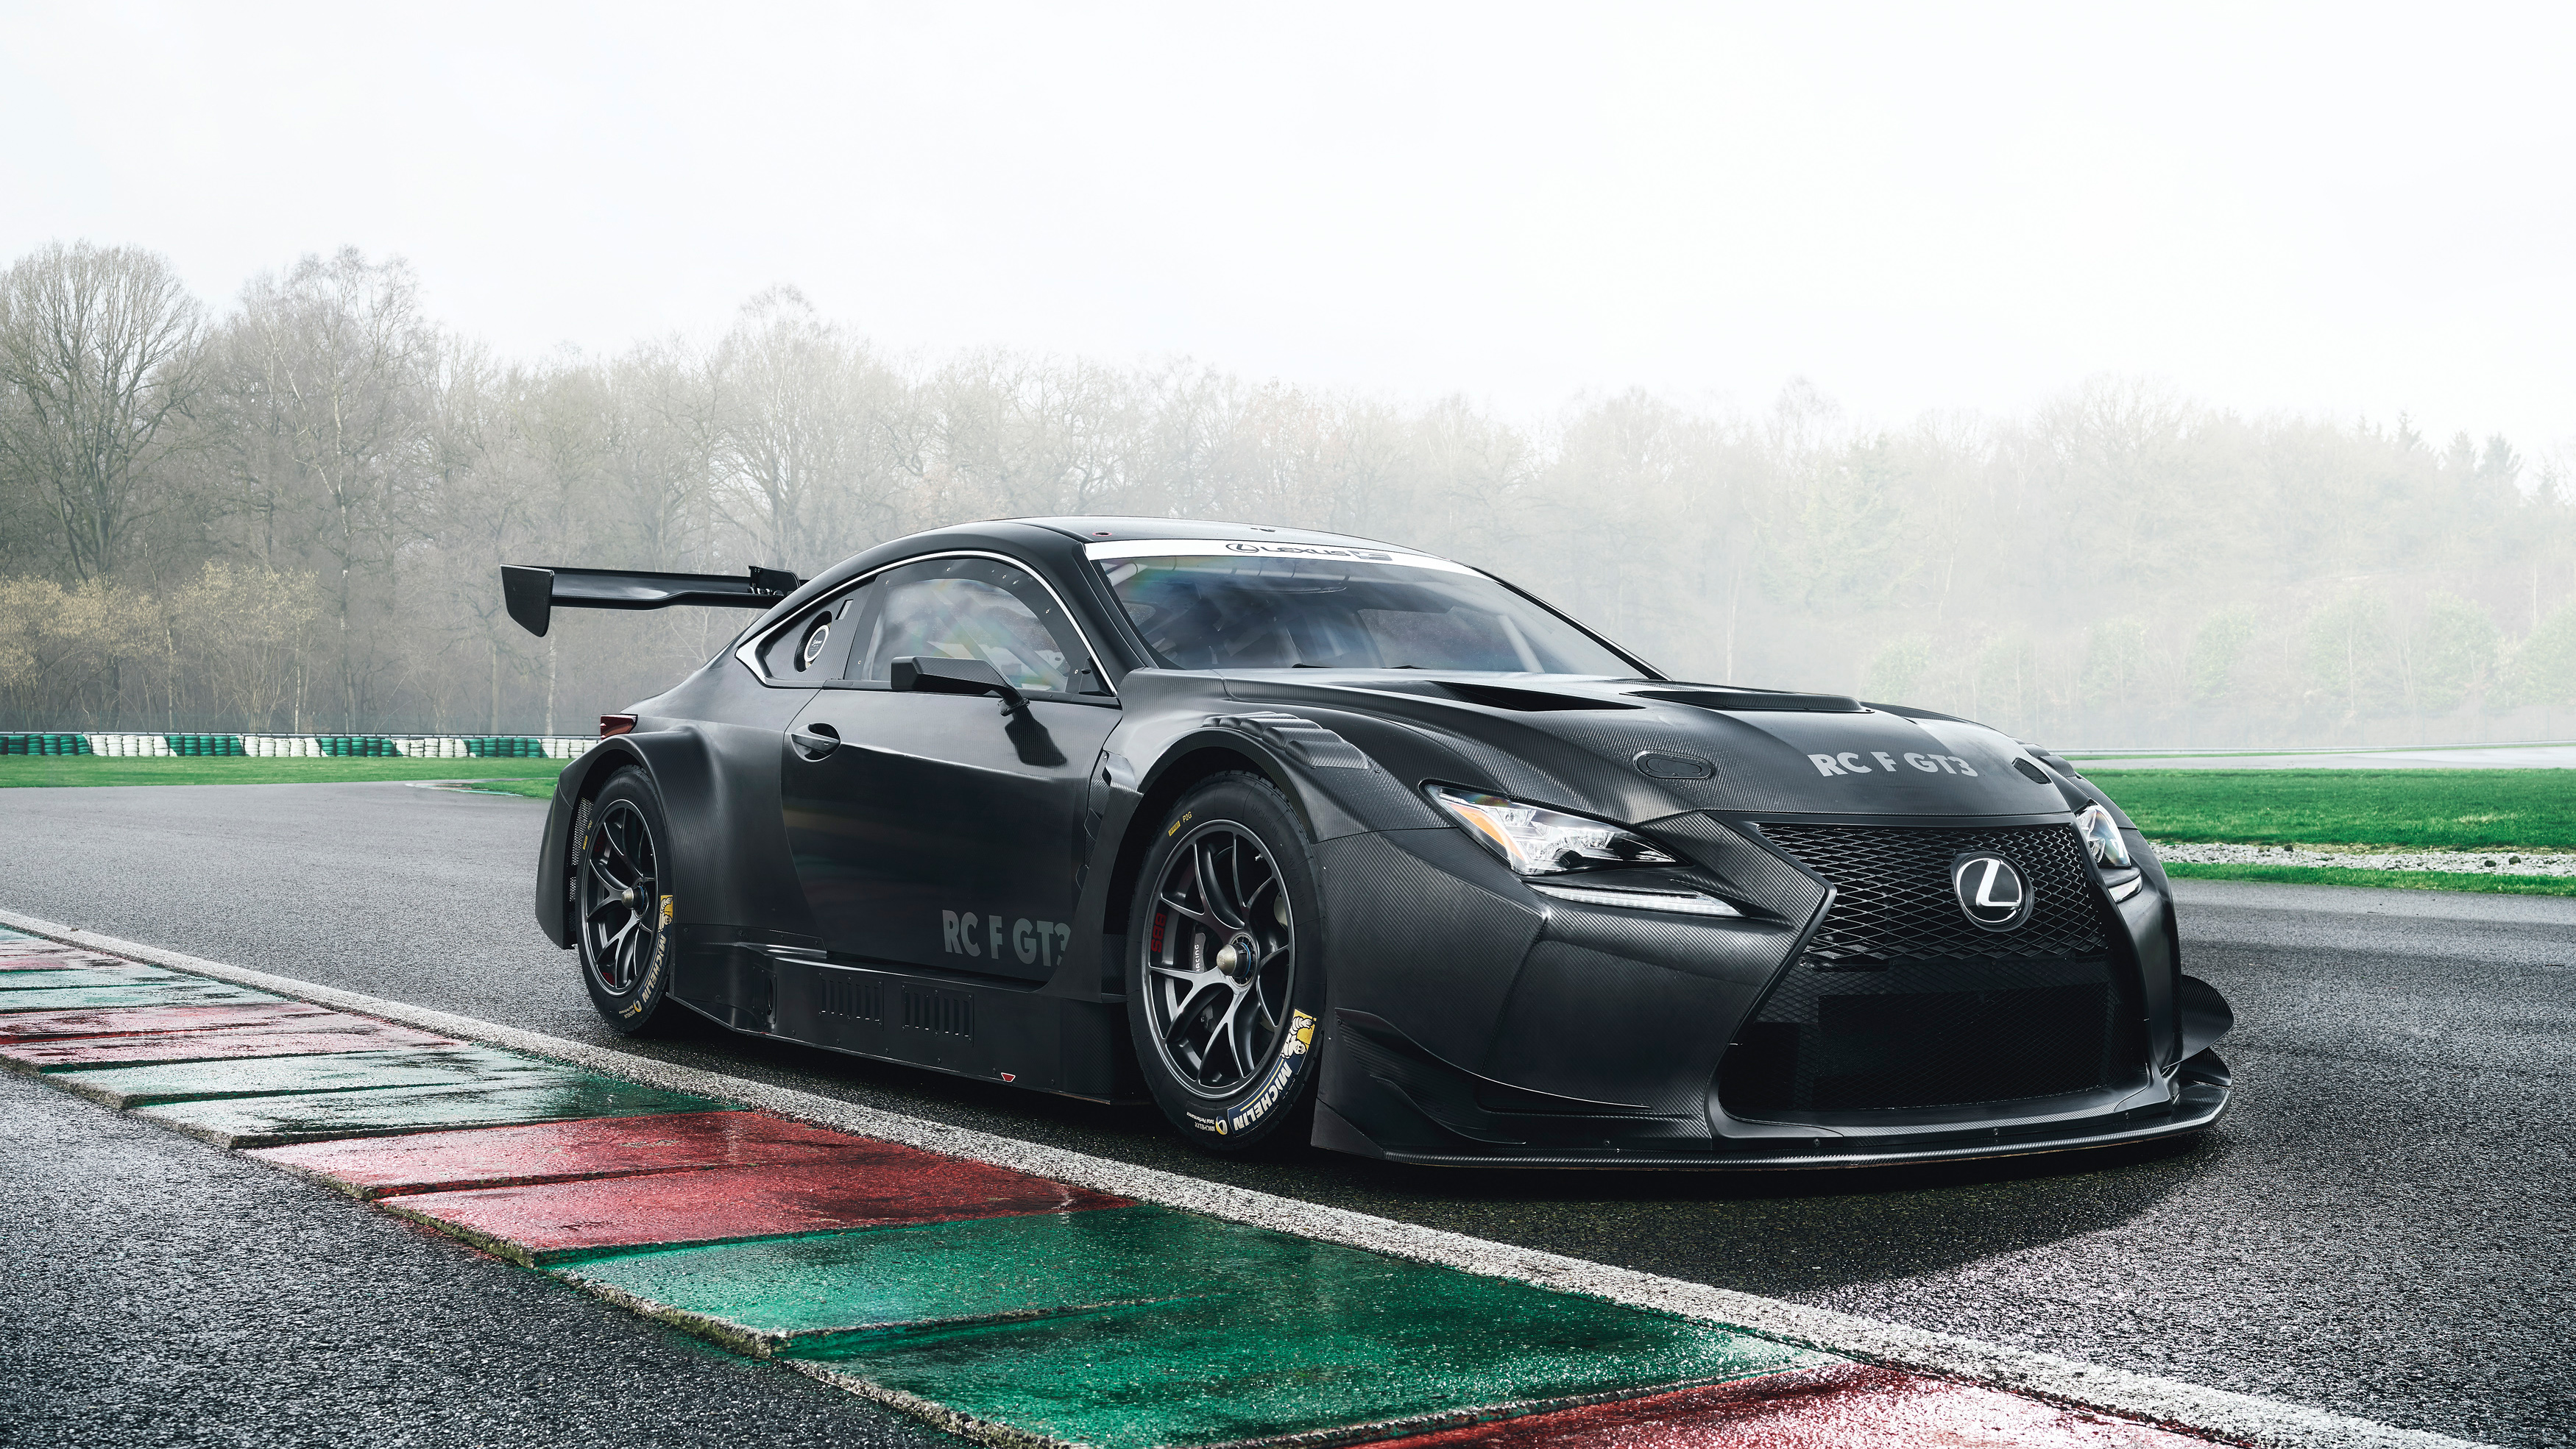 2018 Lexus RC F GT3 6 Wallpaper | HD Car Wallpapers | ID #7566